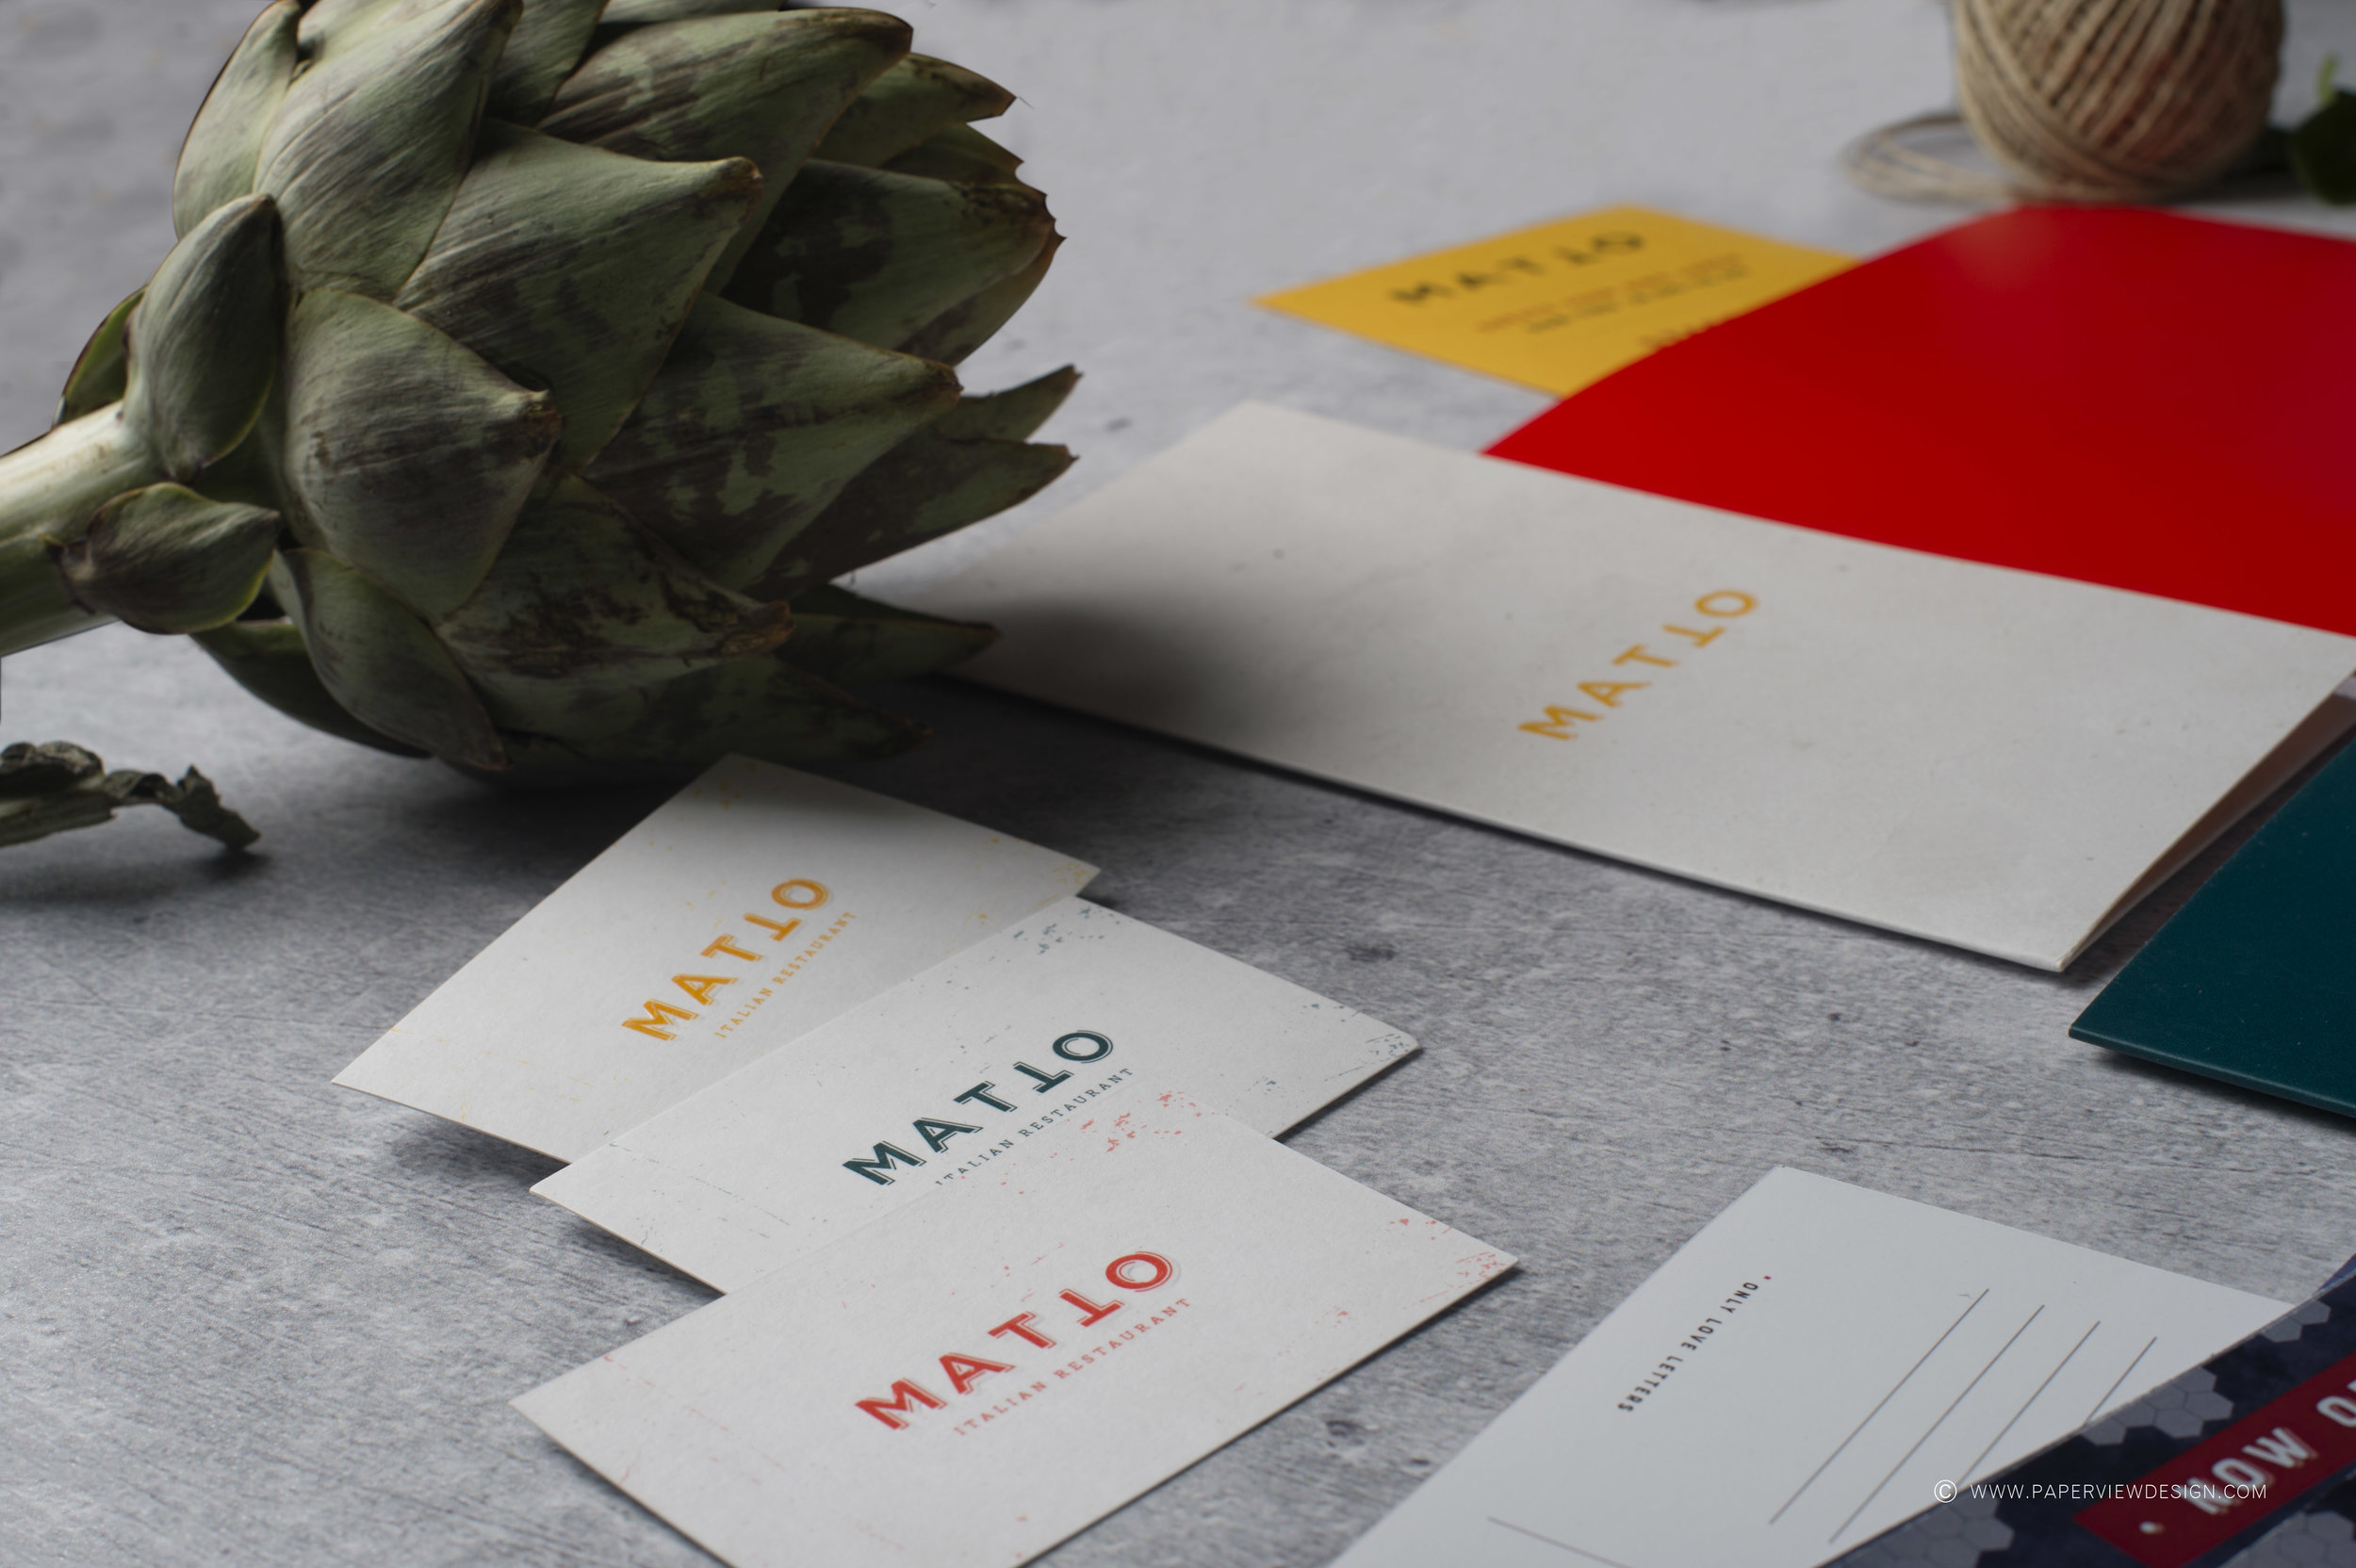 Matto-Crazy-Awesome-Artichoke-Business-Cards-Concrete-Texture-Yellow-Red-Mood-Art-Design